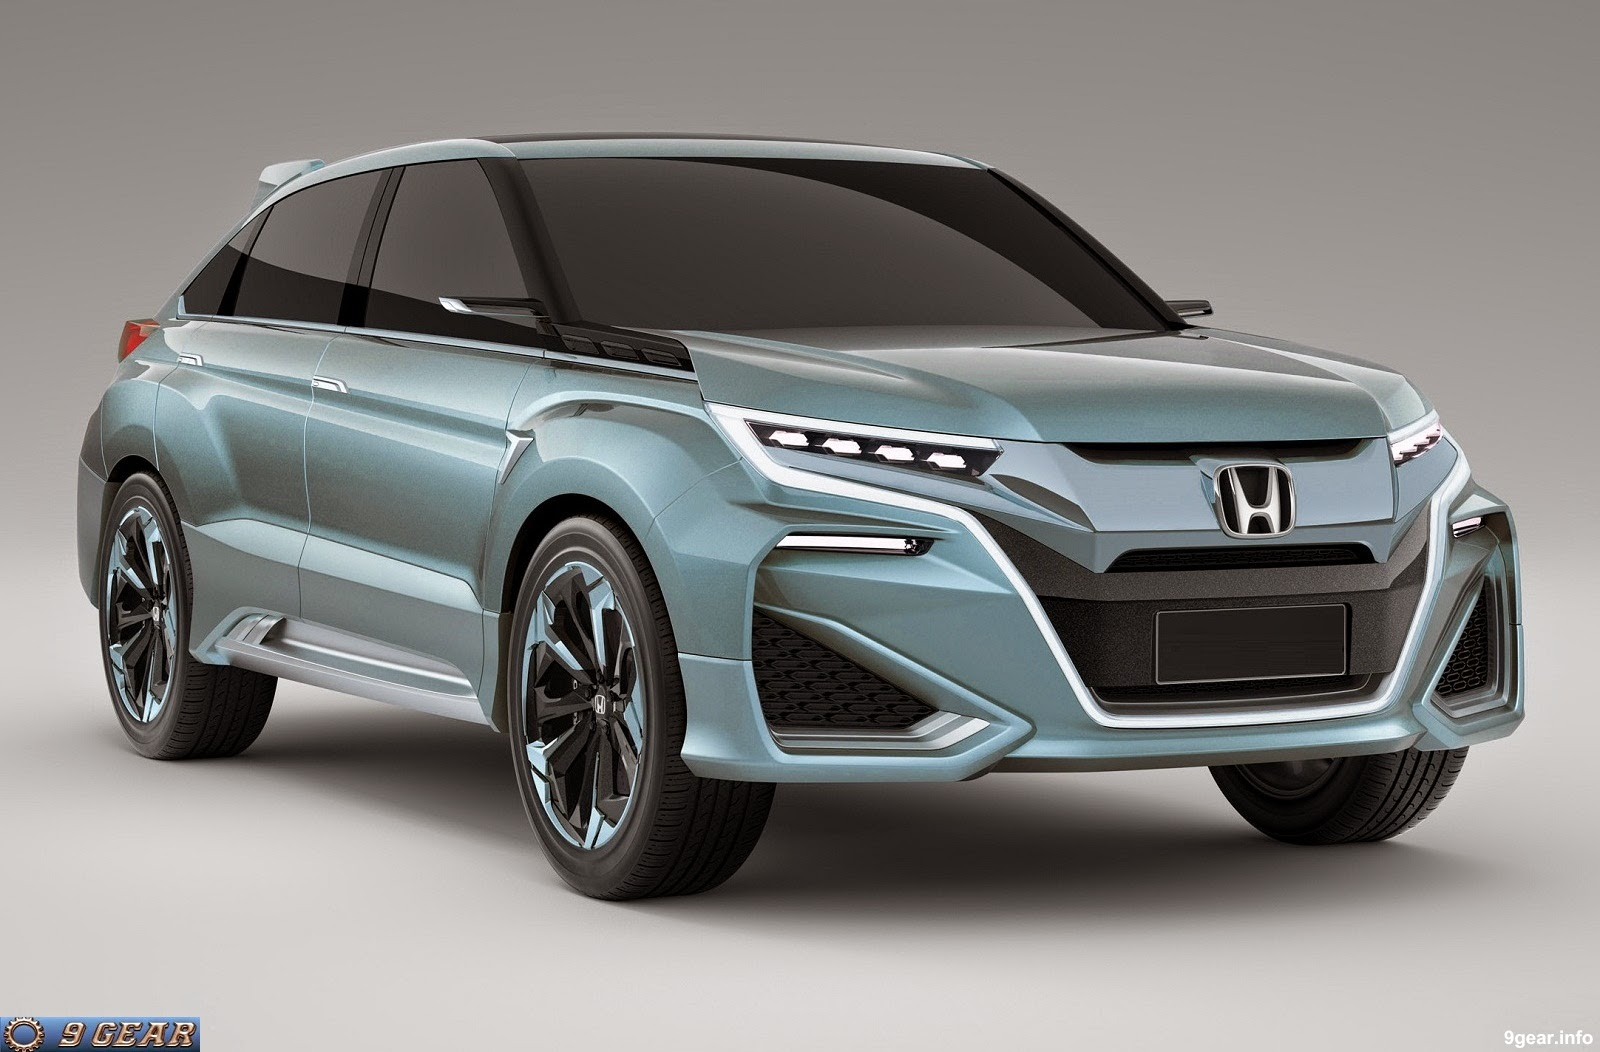 honda debuts concept d crossover at shanghai car reviews new car pictures for 2018 2019. Black Bedroom Furniture Sets. Home Design Ideas